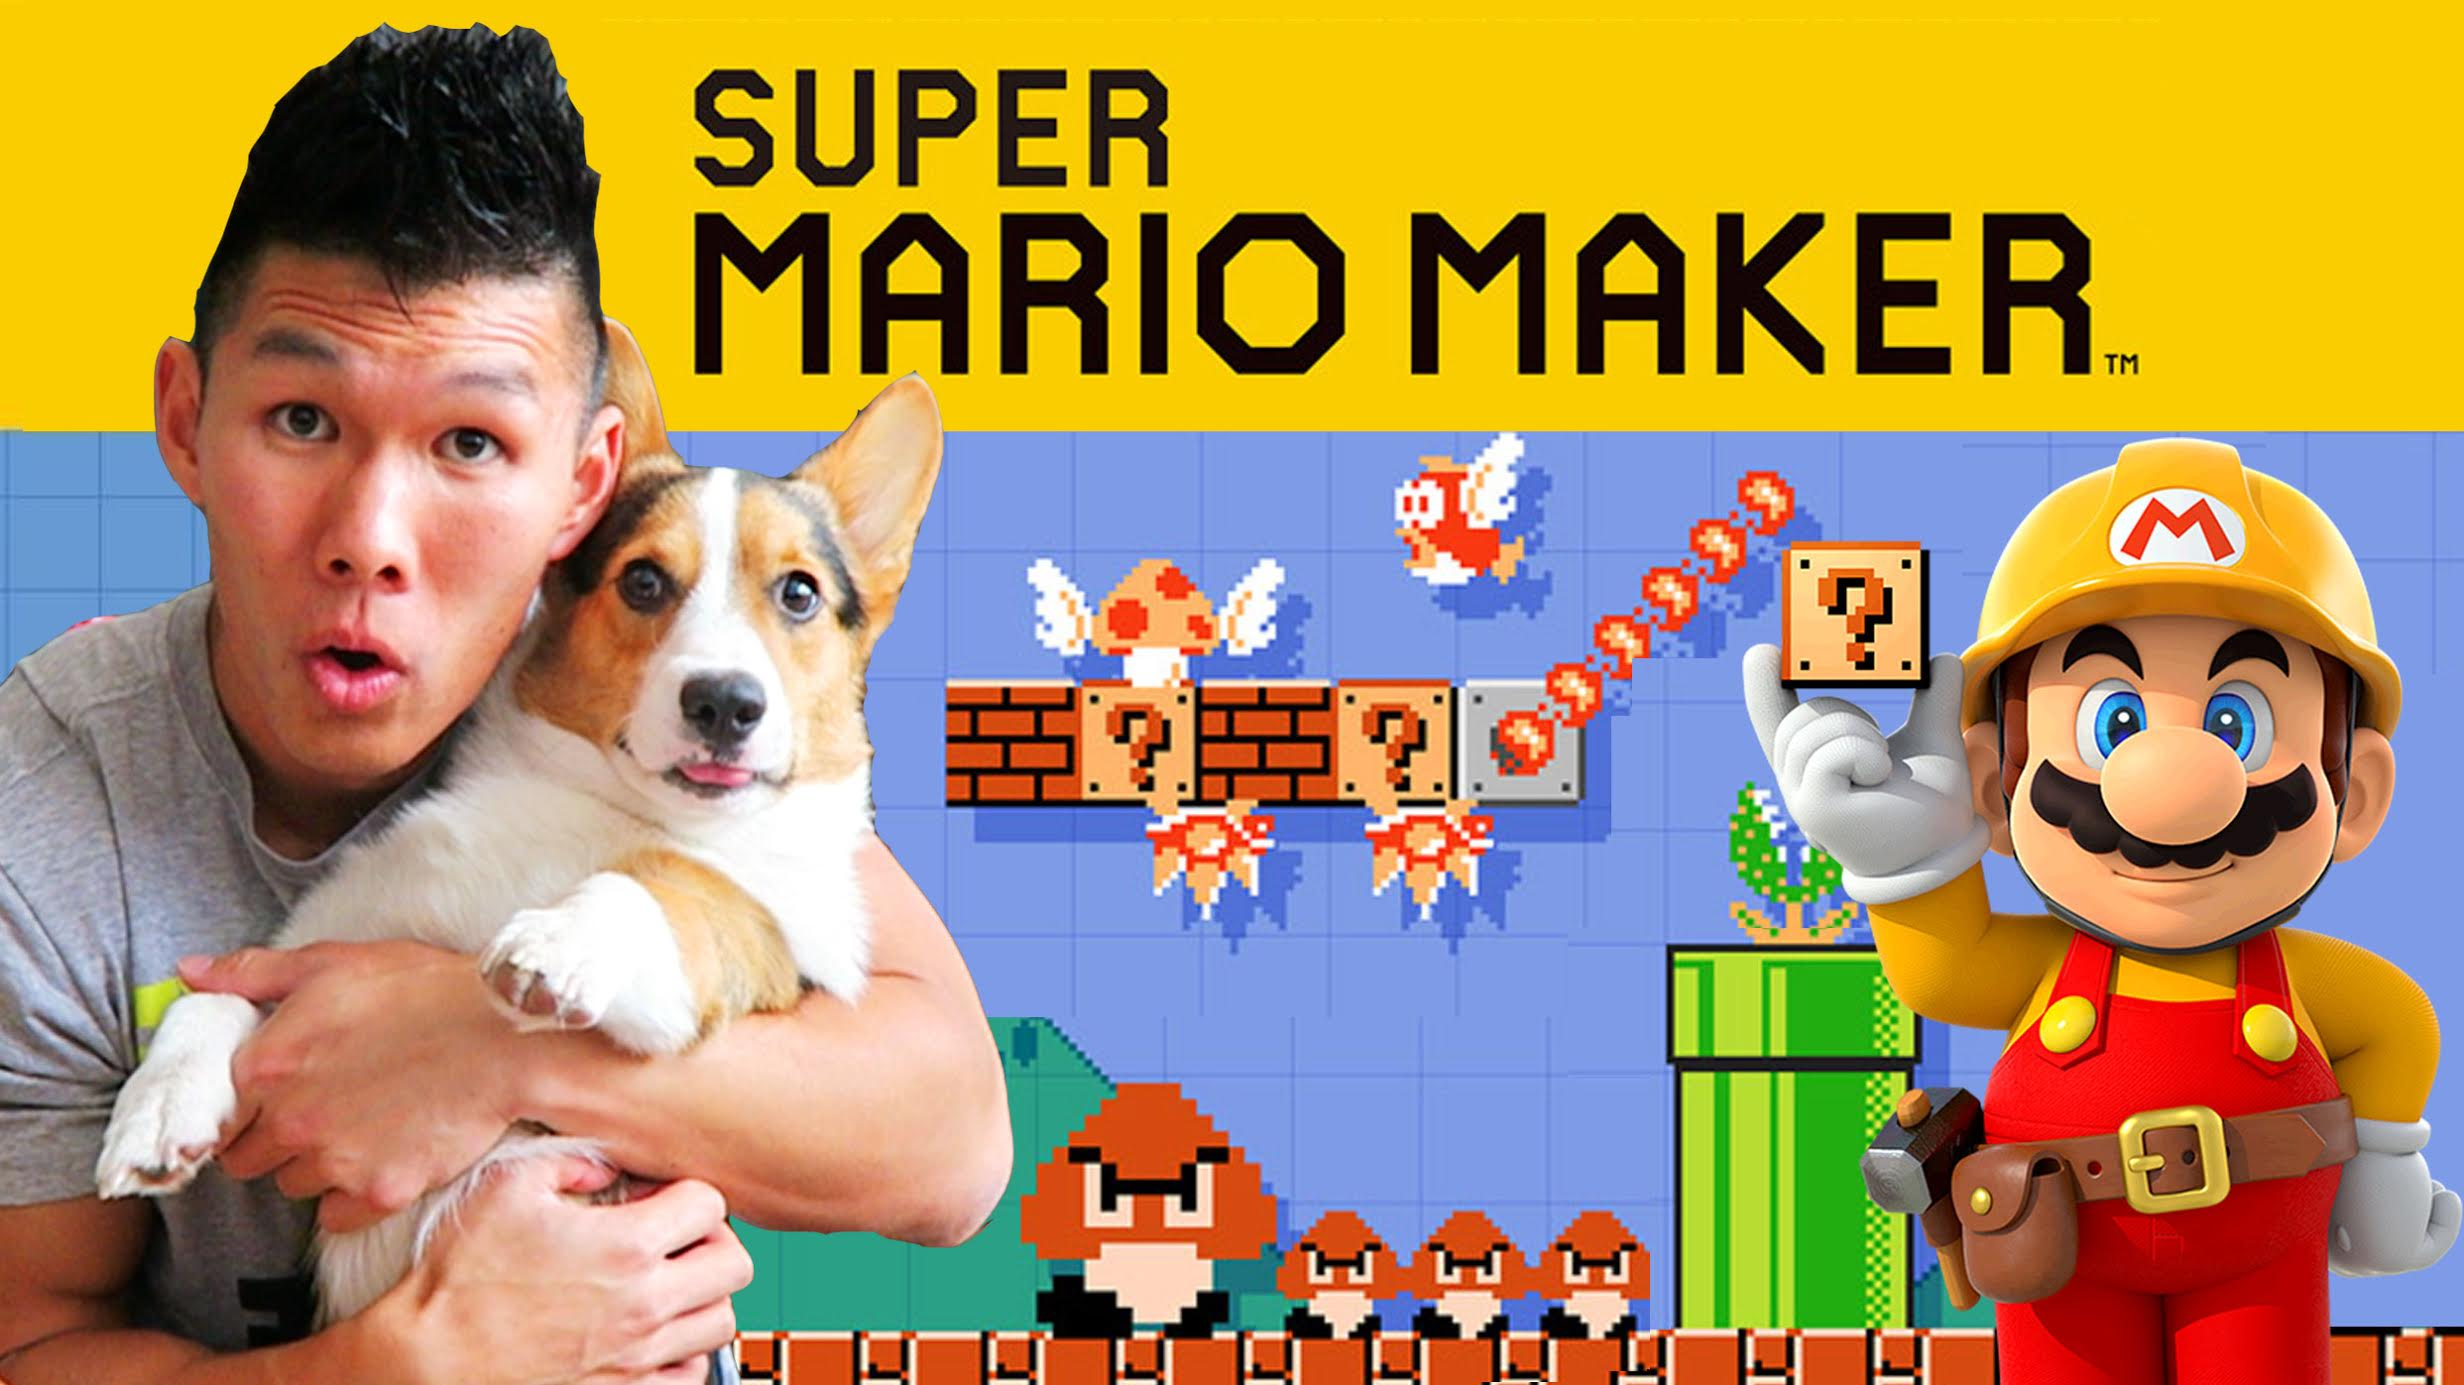 SUPER MARIO MAKER + CORGI GAMEPLAY - The Amiibo Levels